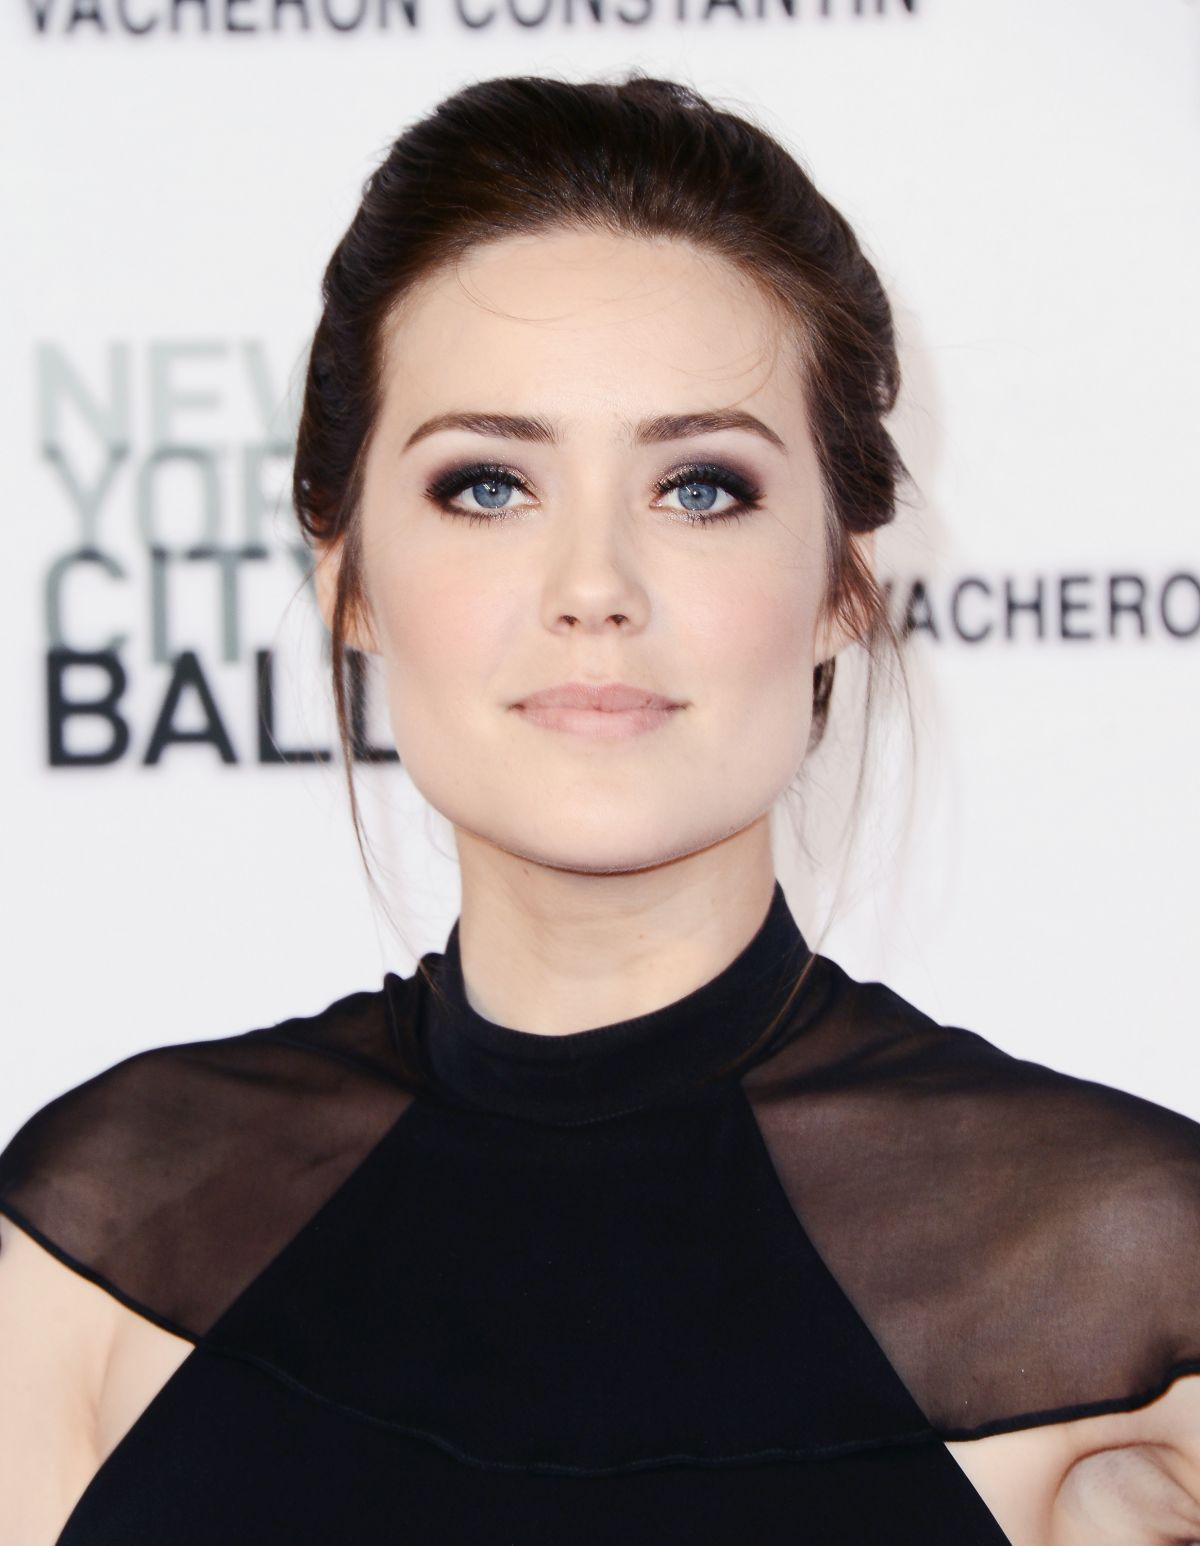 Pictures Megan Boone nudes (96 photo), Topless, Hot, Selfie, lingerie 2018